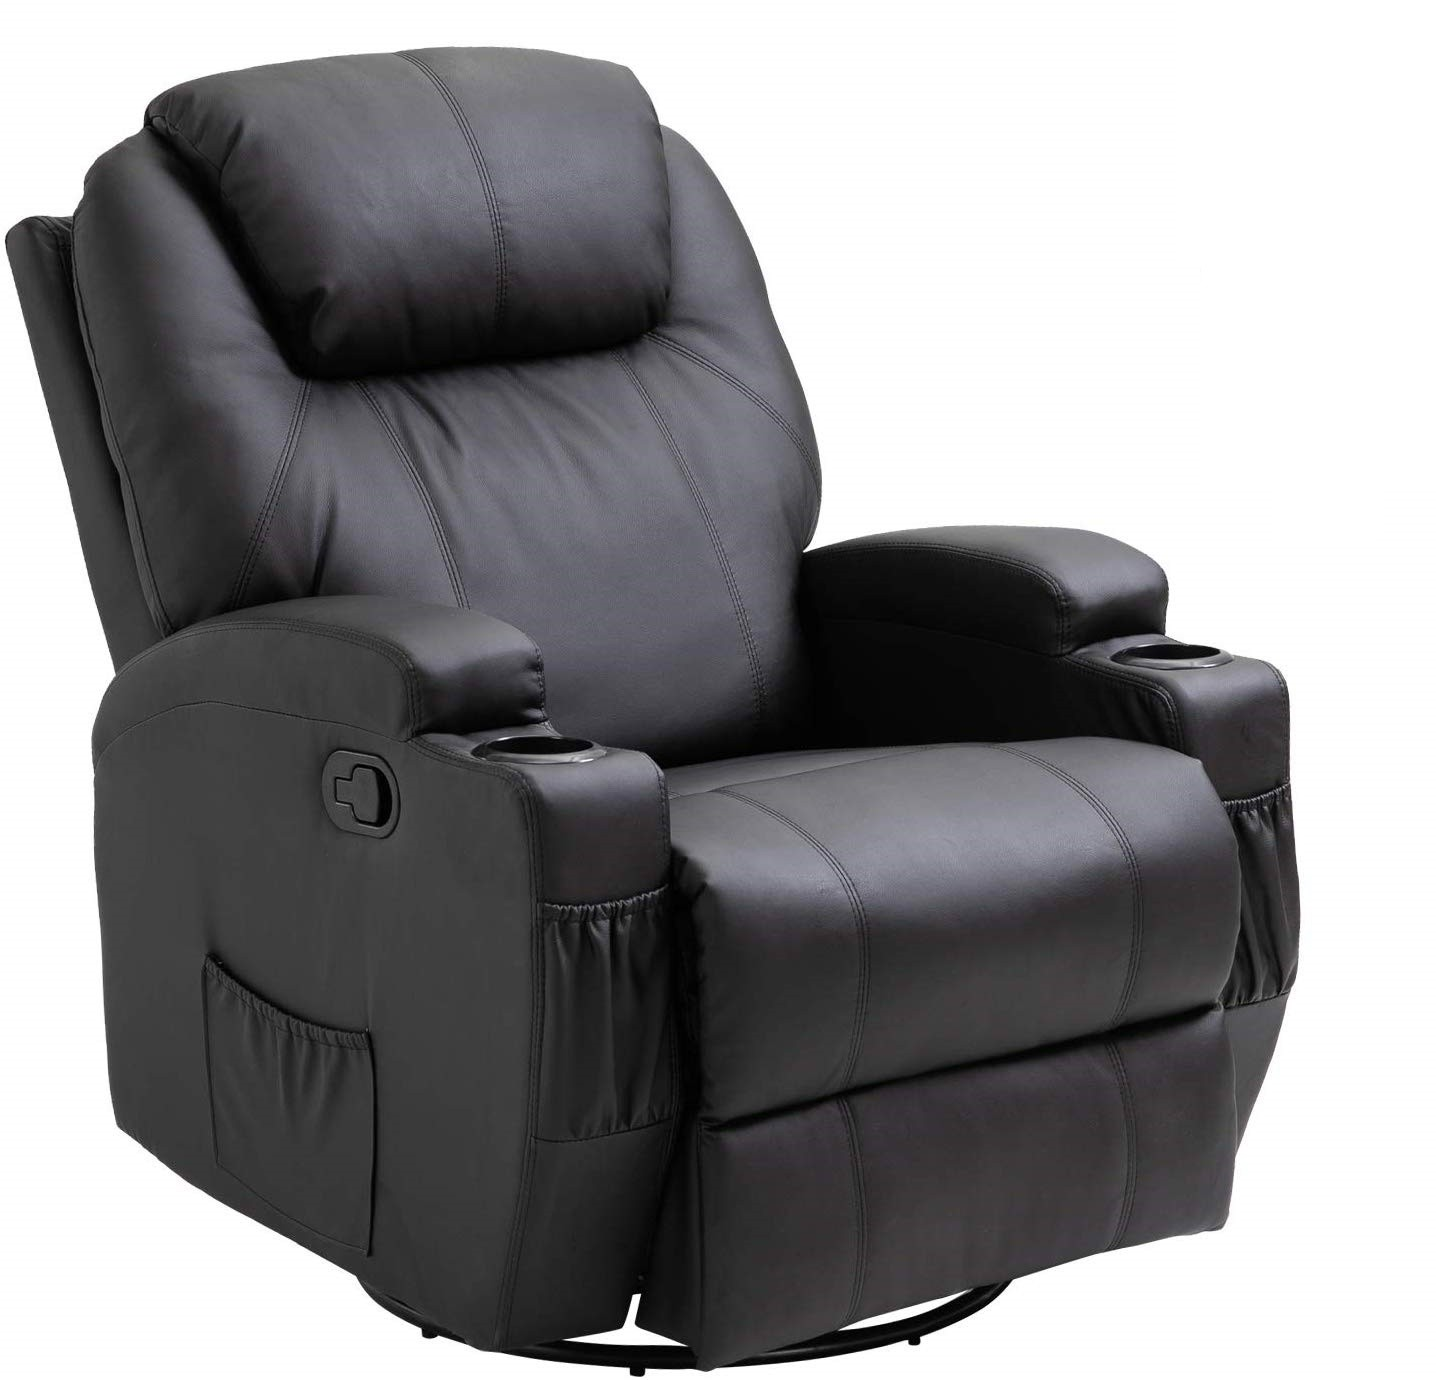 HomCom Massage and Heating recliner